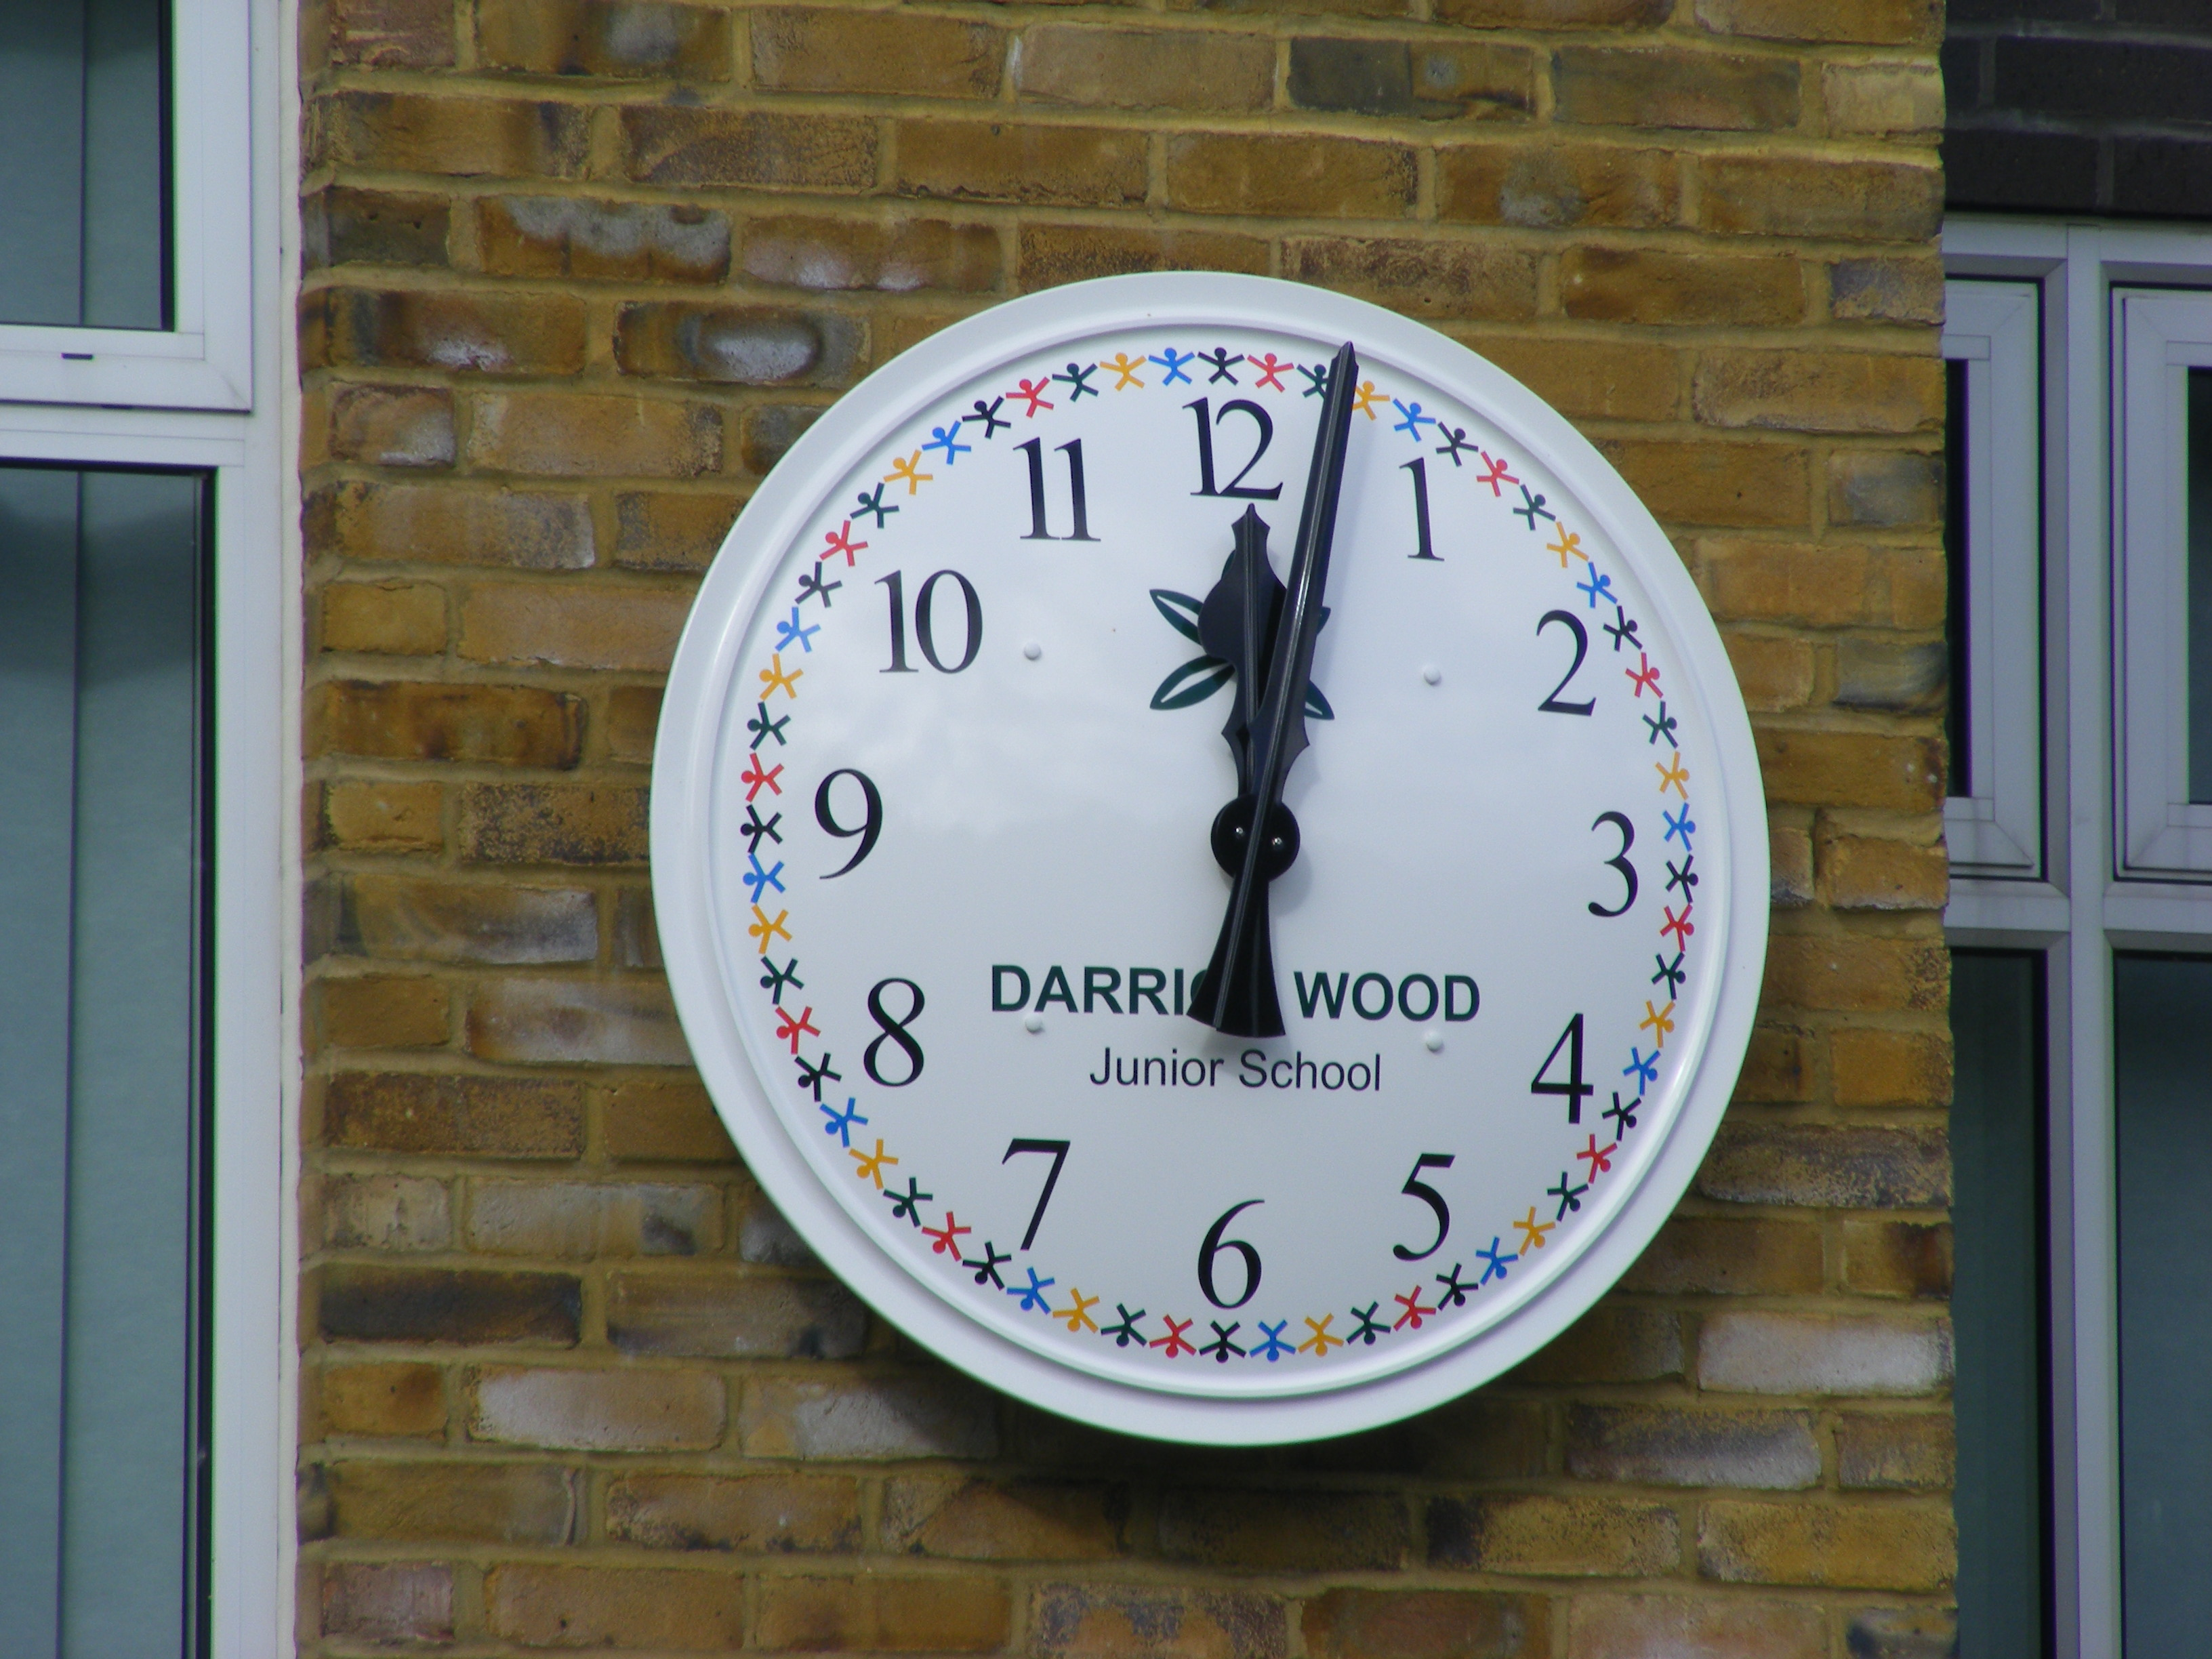 Darrick clock close up